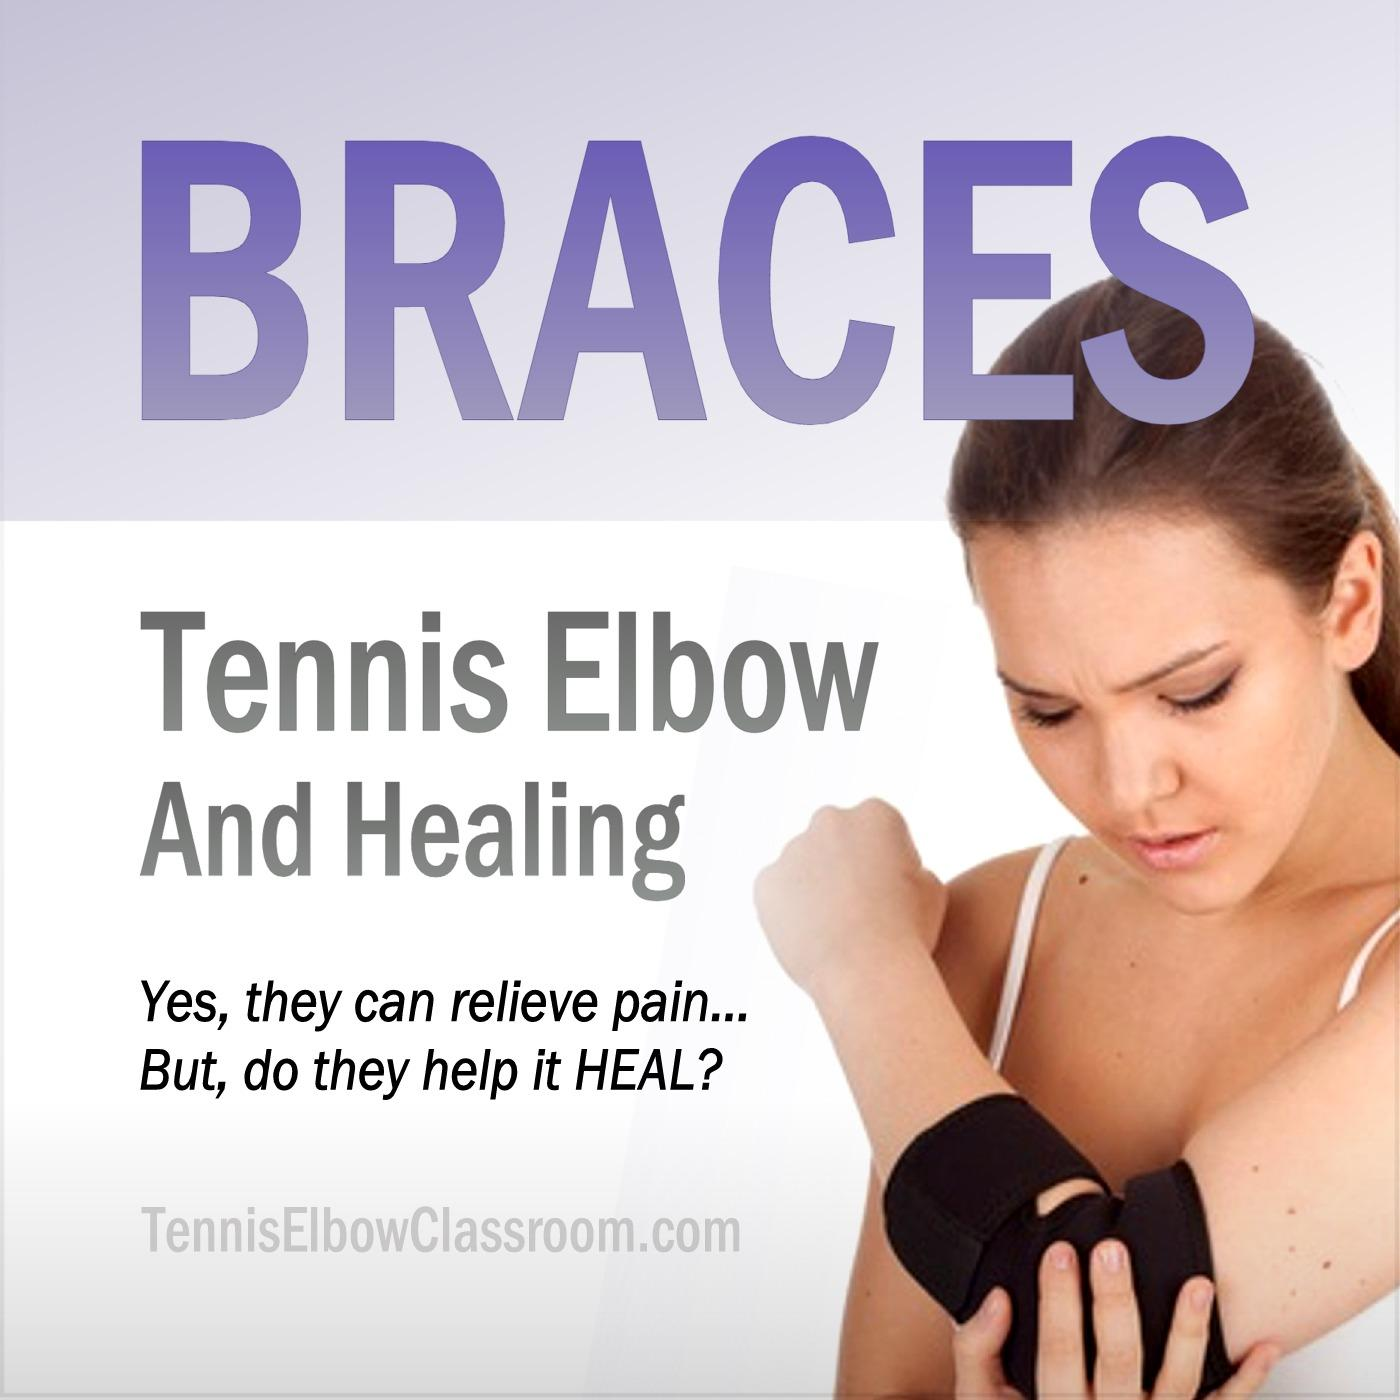 Braces, Tennis Elbow And Healing